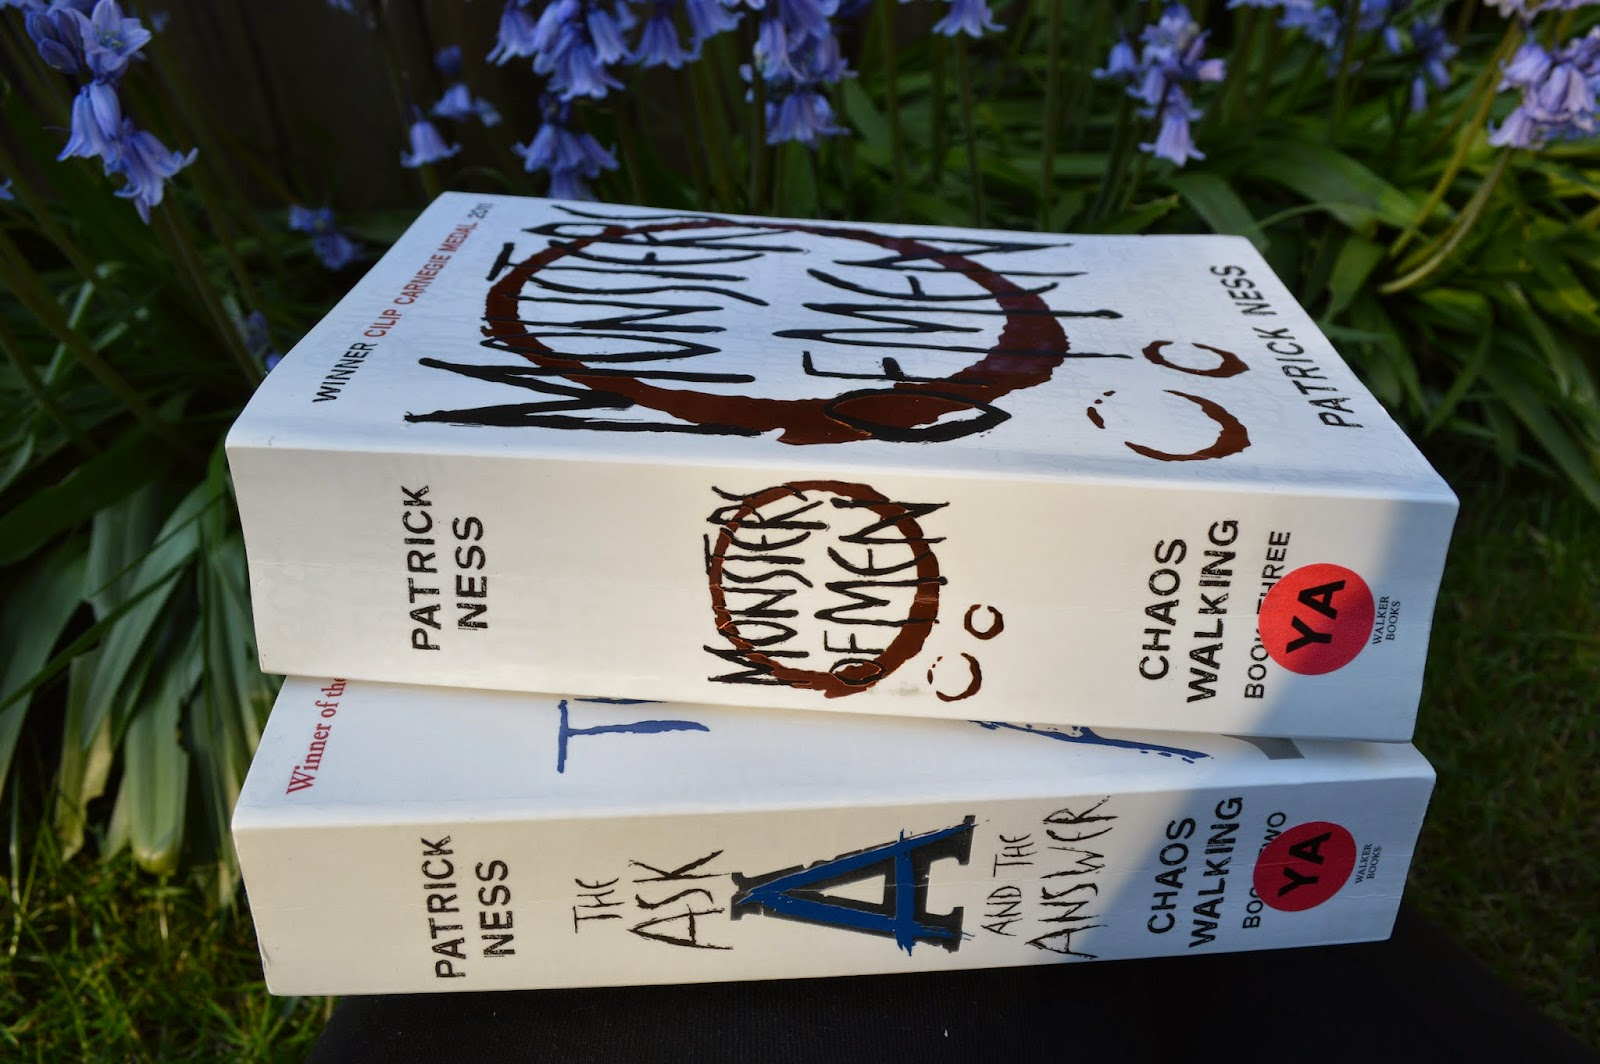 Patrick Ness, review, Chaos Walking, The Ask and the Answer, Monster of Men, YA fiction, paperback, UK edition